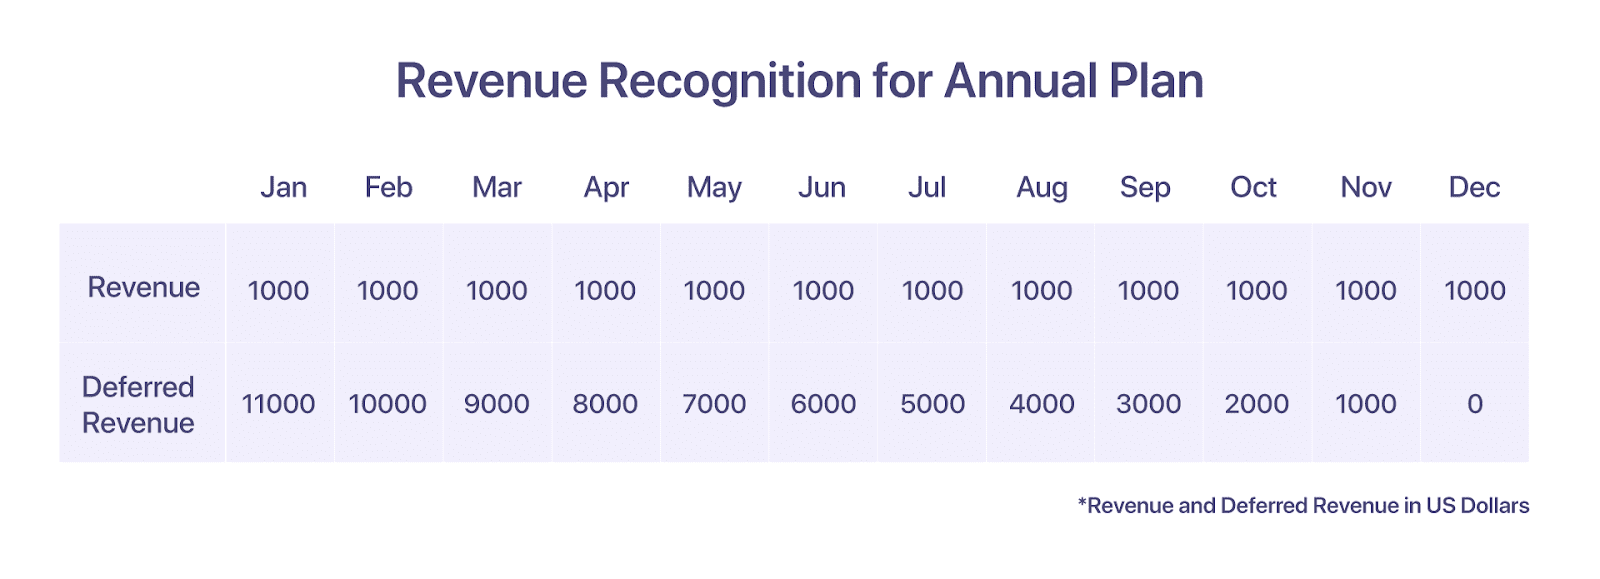 Revenue Recognition for Annual Plan